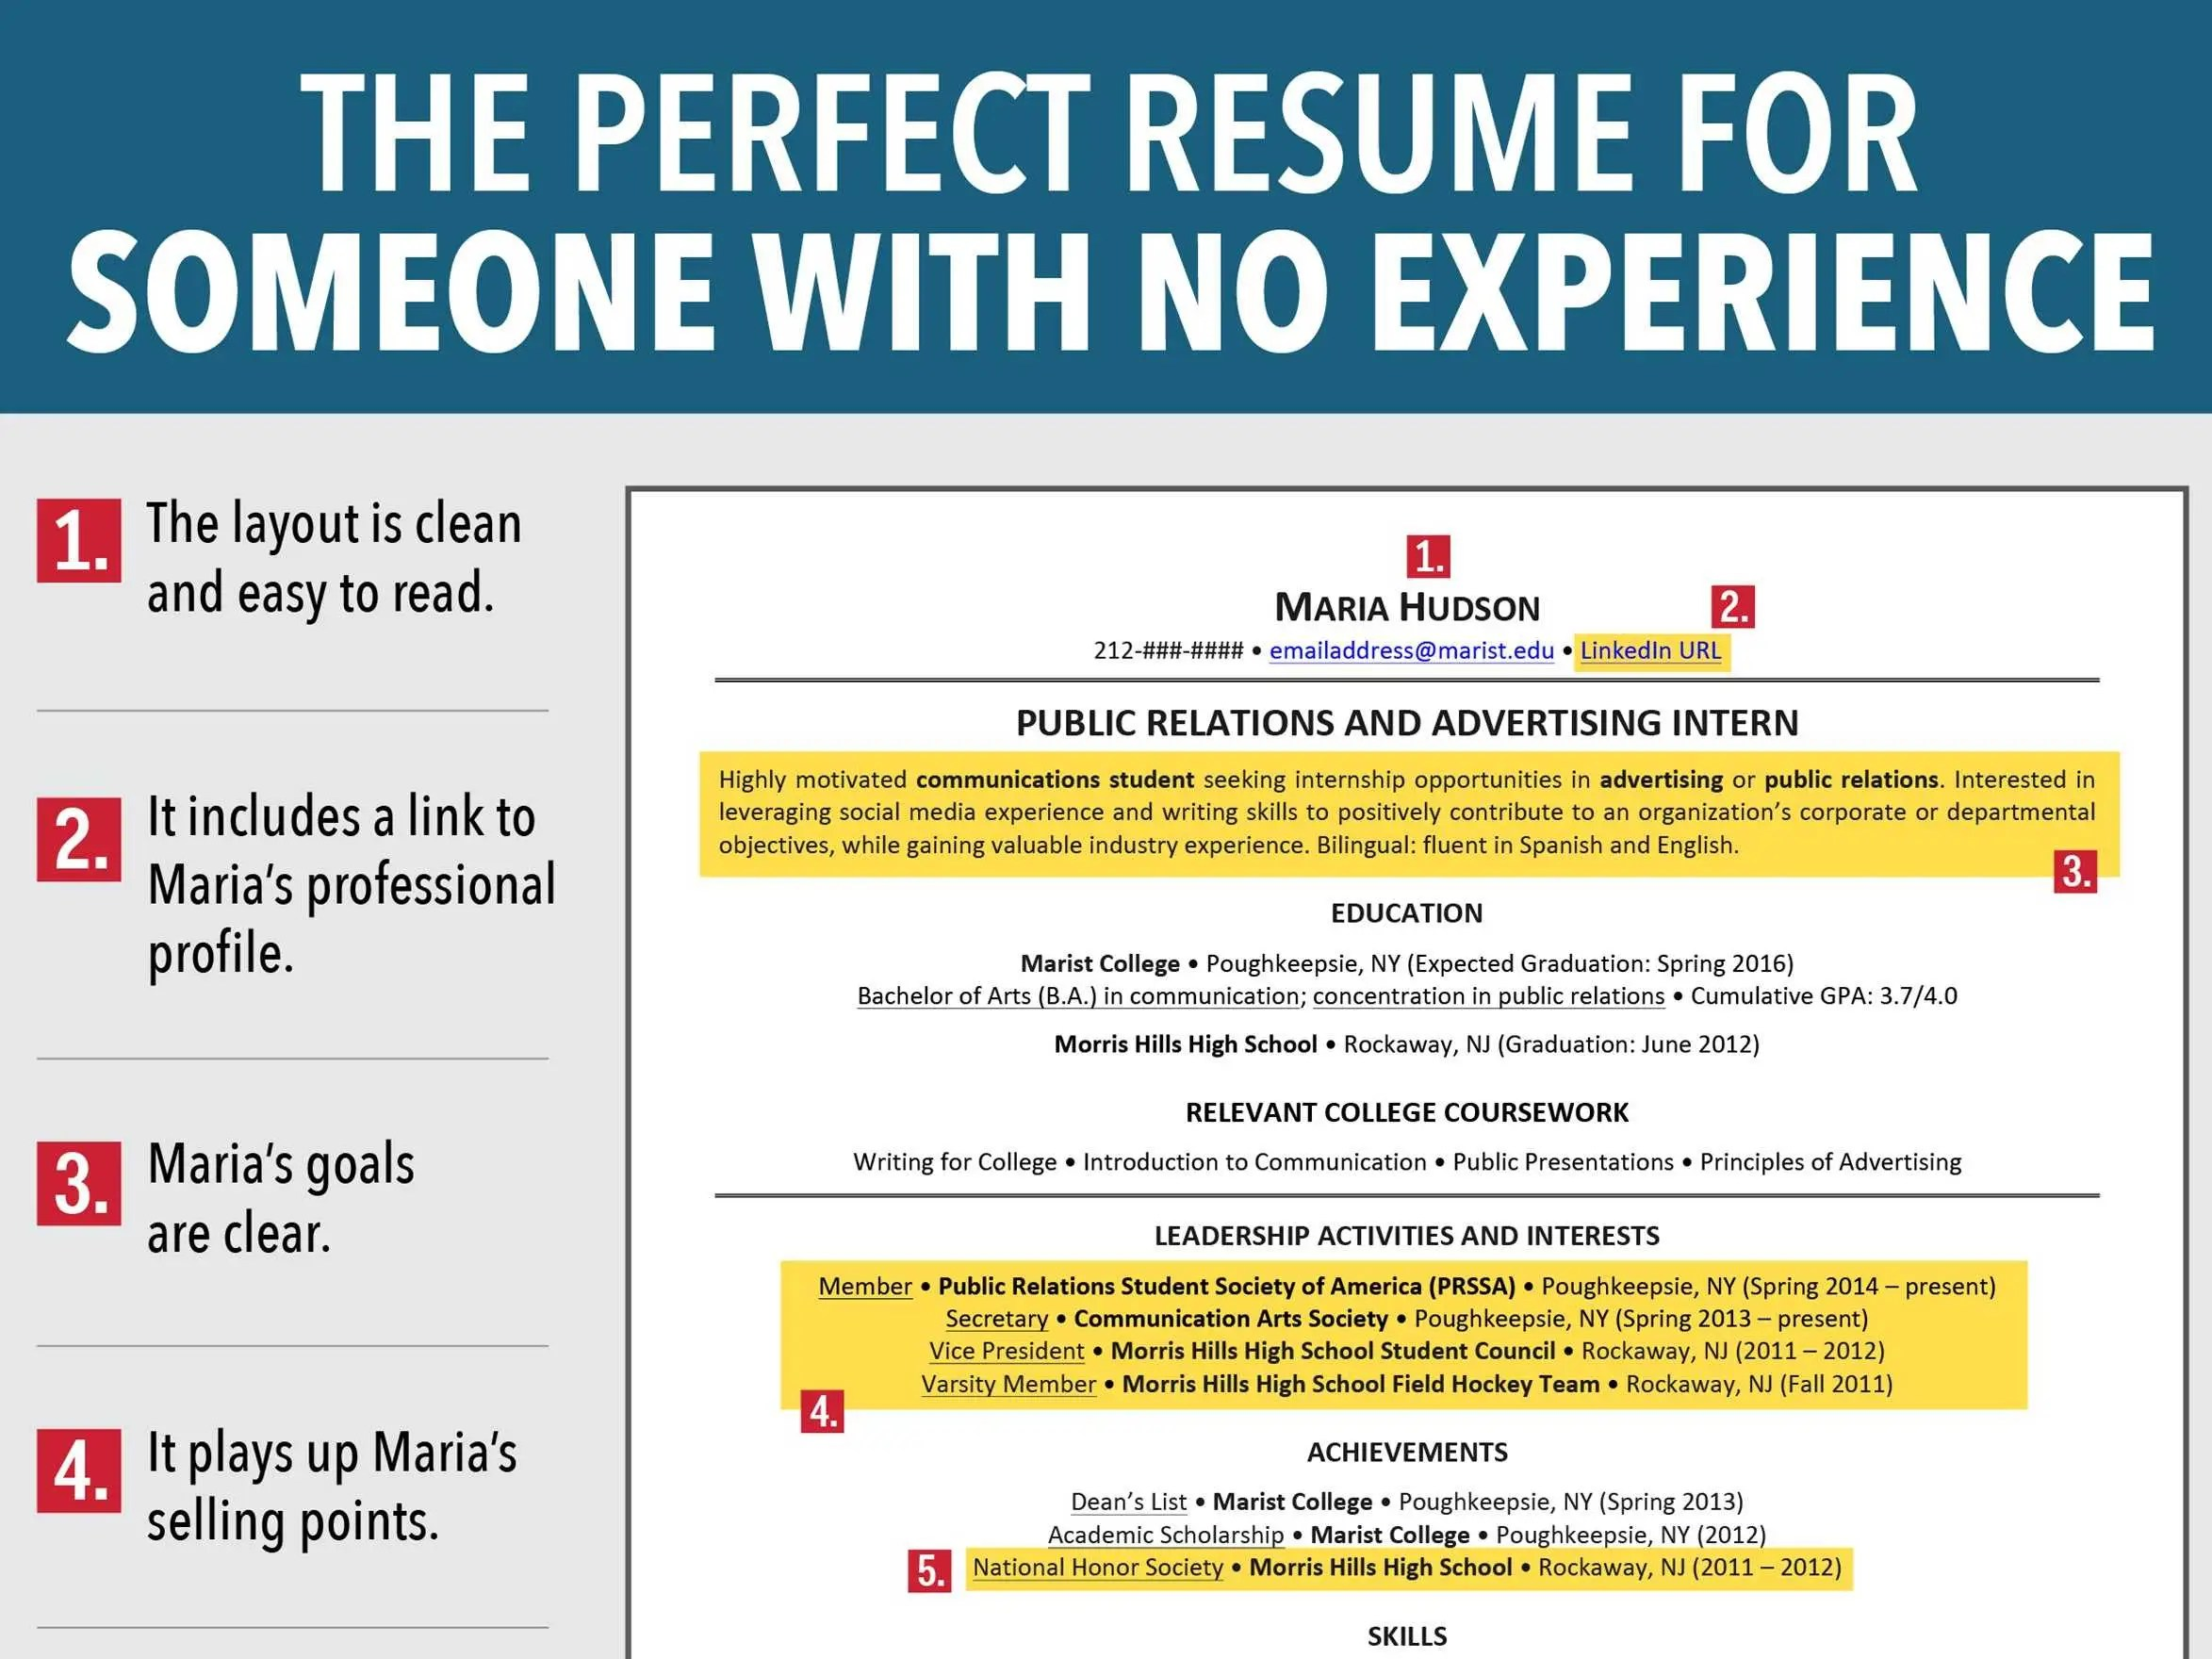 Superior Resume For Job Seeker With No Experience Business Insider With How To Make A Resume With No Job Experience